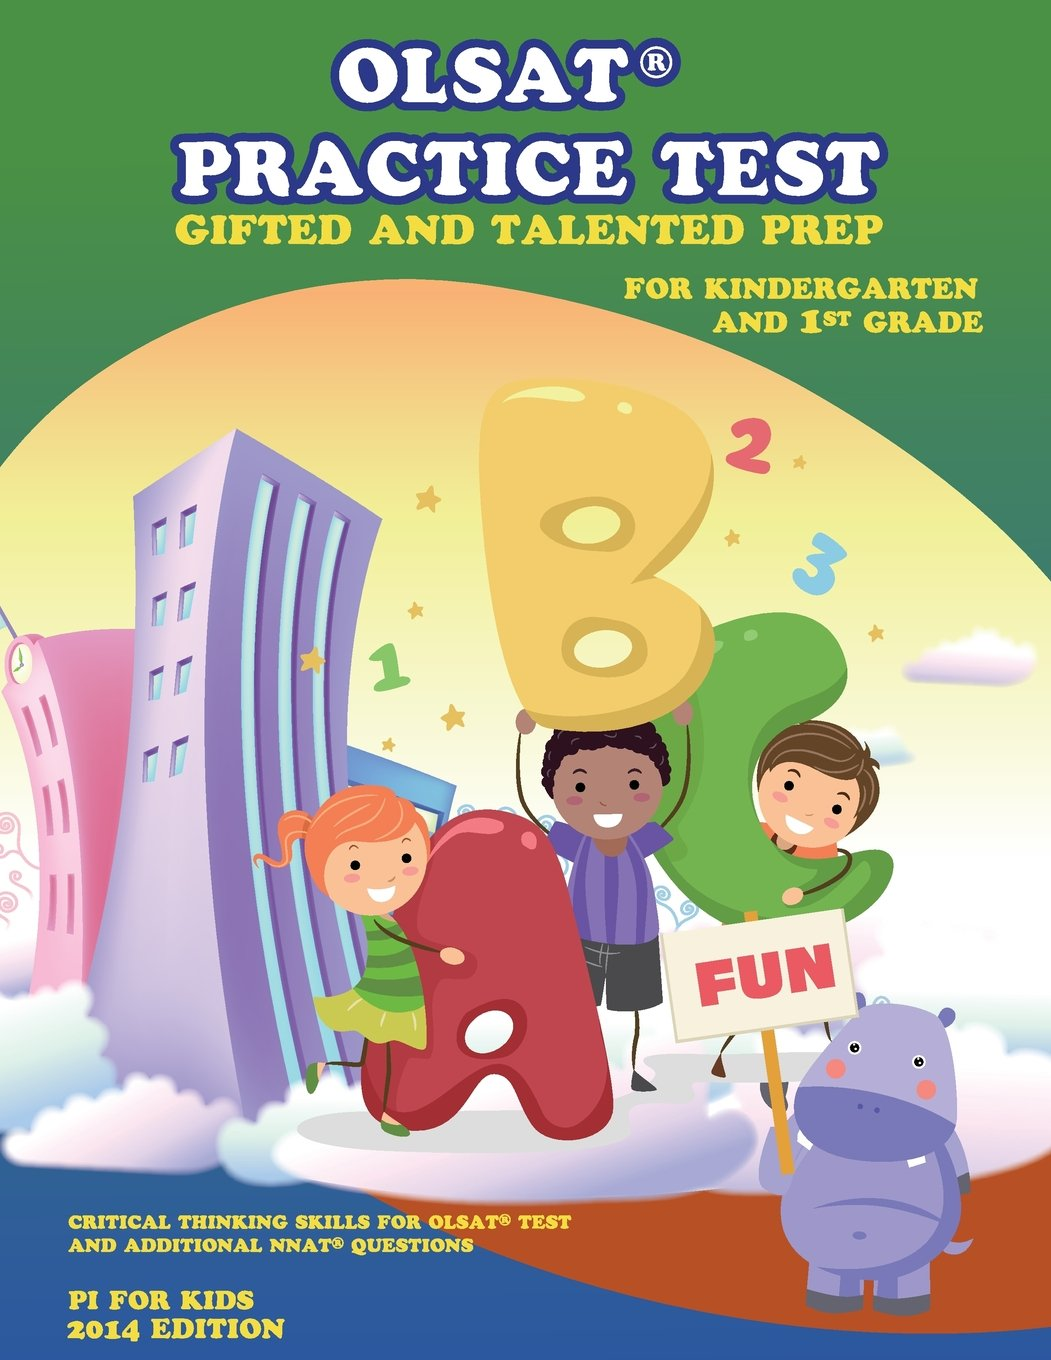 Amazon.com: Gifted and Talented Test Prep: OLSAT Practice Test ...